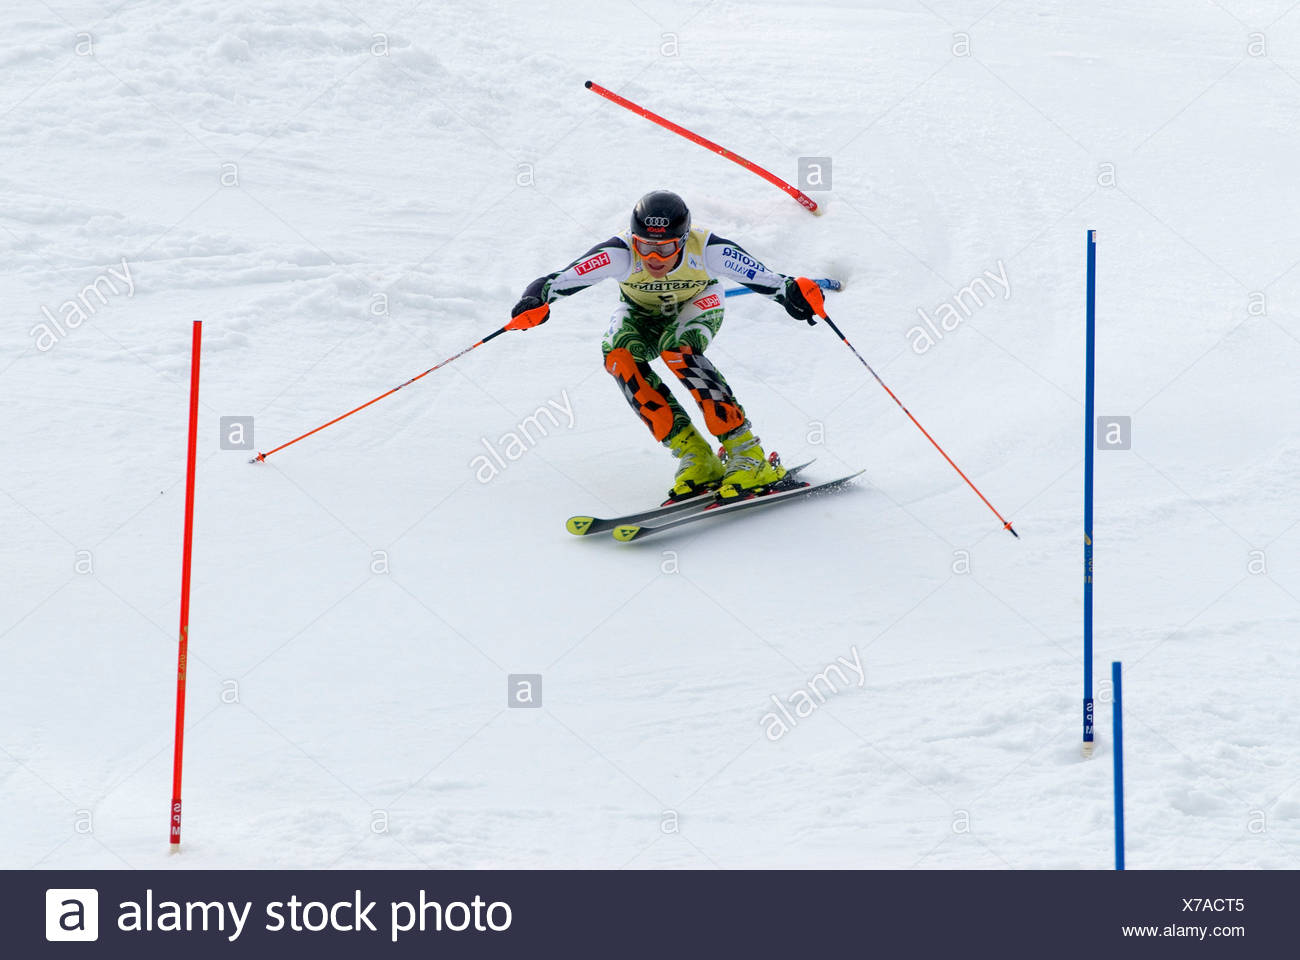 Kalle Palander, Finland, FIS Ski Worldcup, Slalom men, Kandahar race, Garmisch-Partenkirchen, Bavaria, Germany Stock Photo